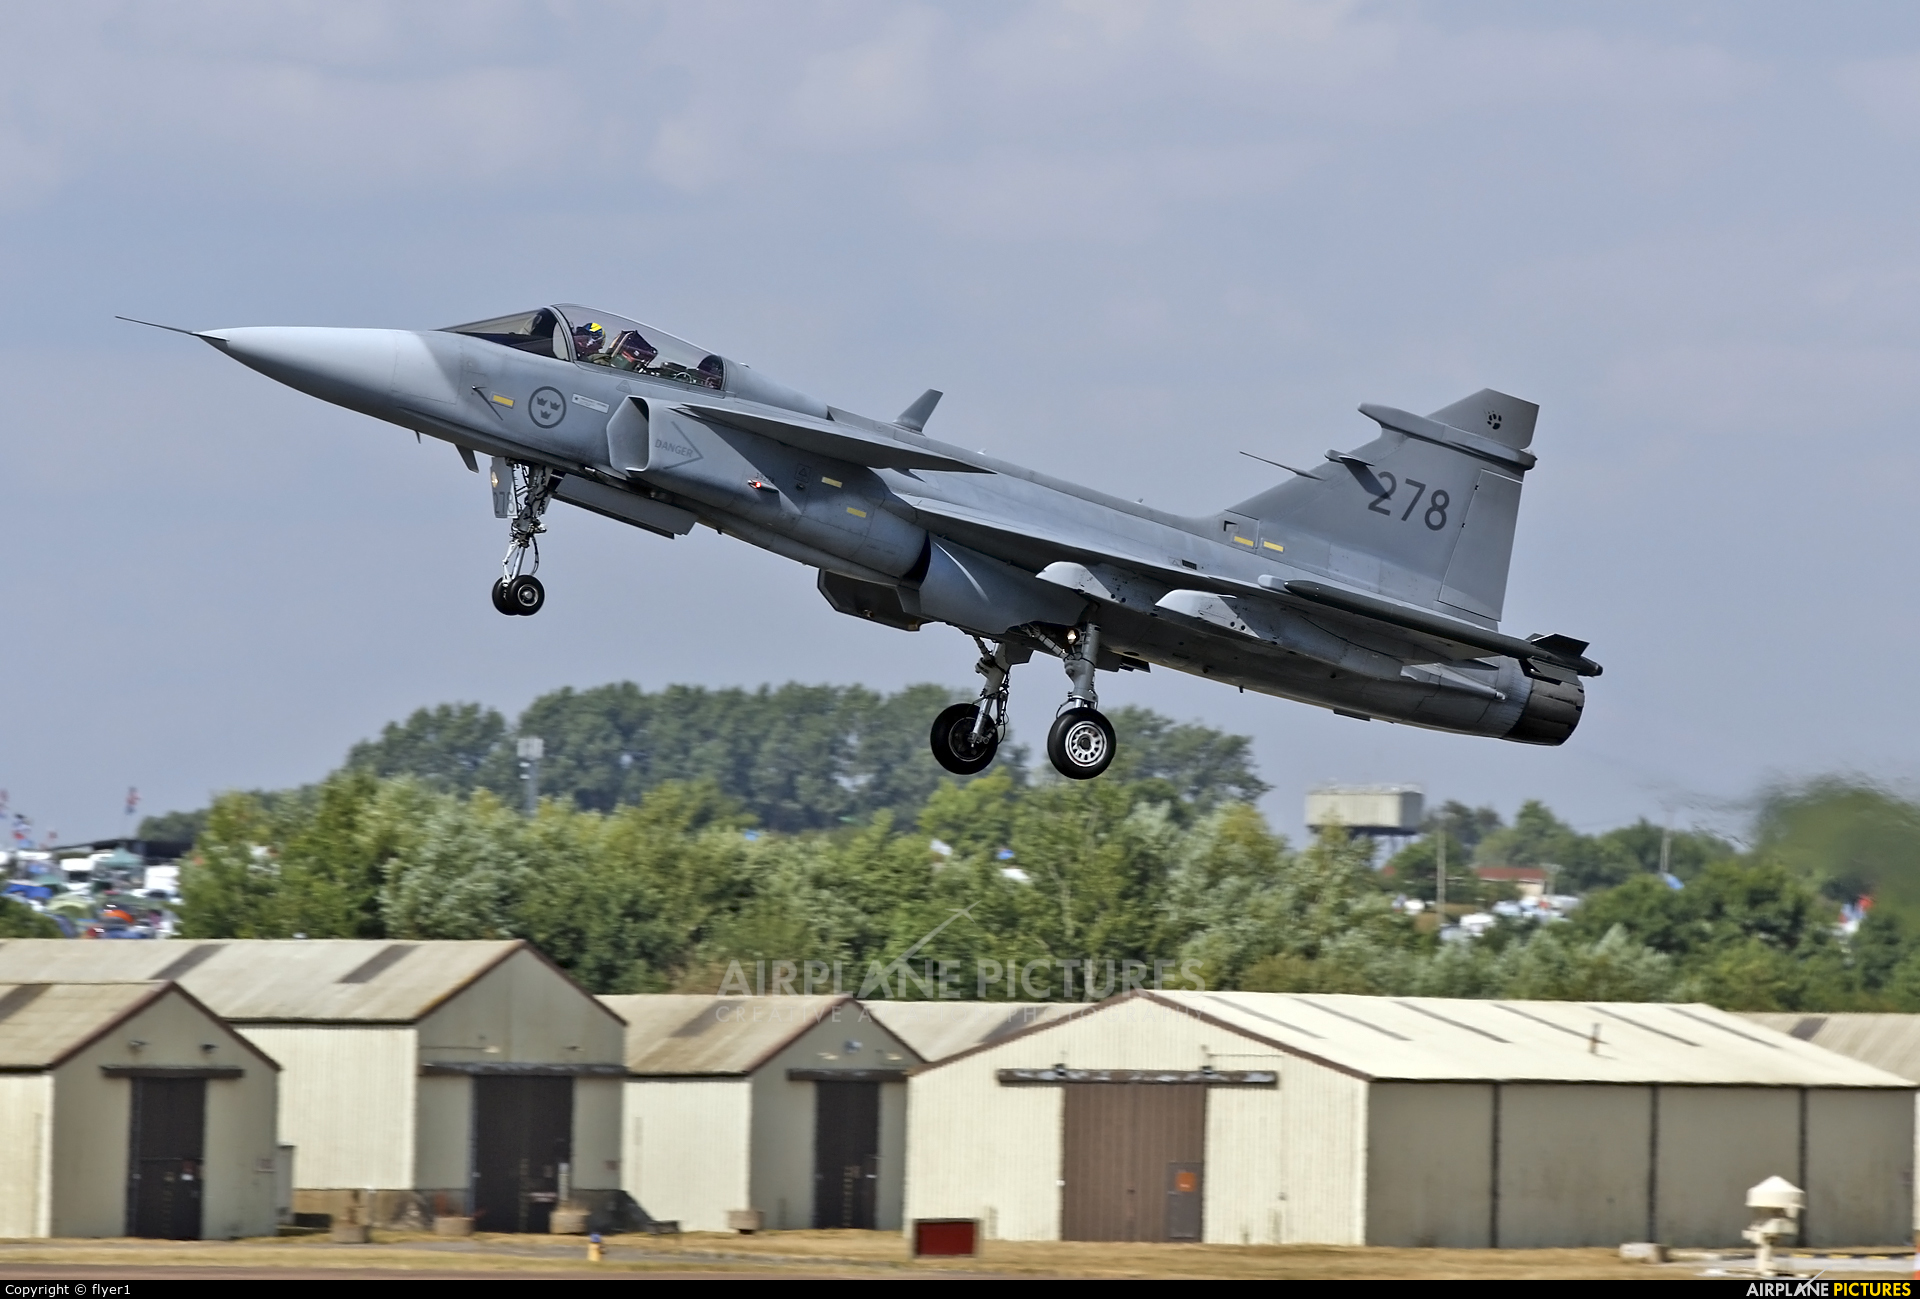 Sweden - Air Force 39278 aircraft at Fairford